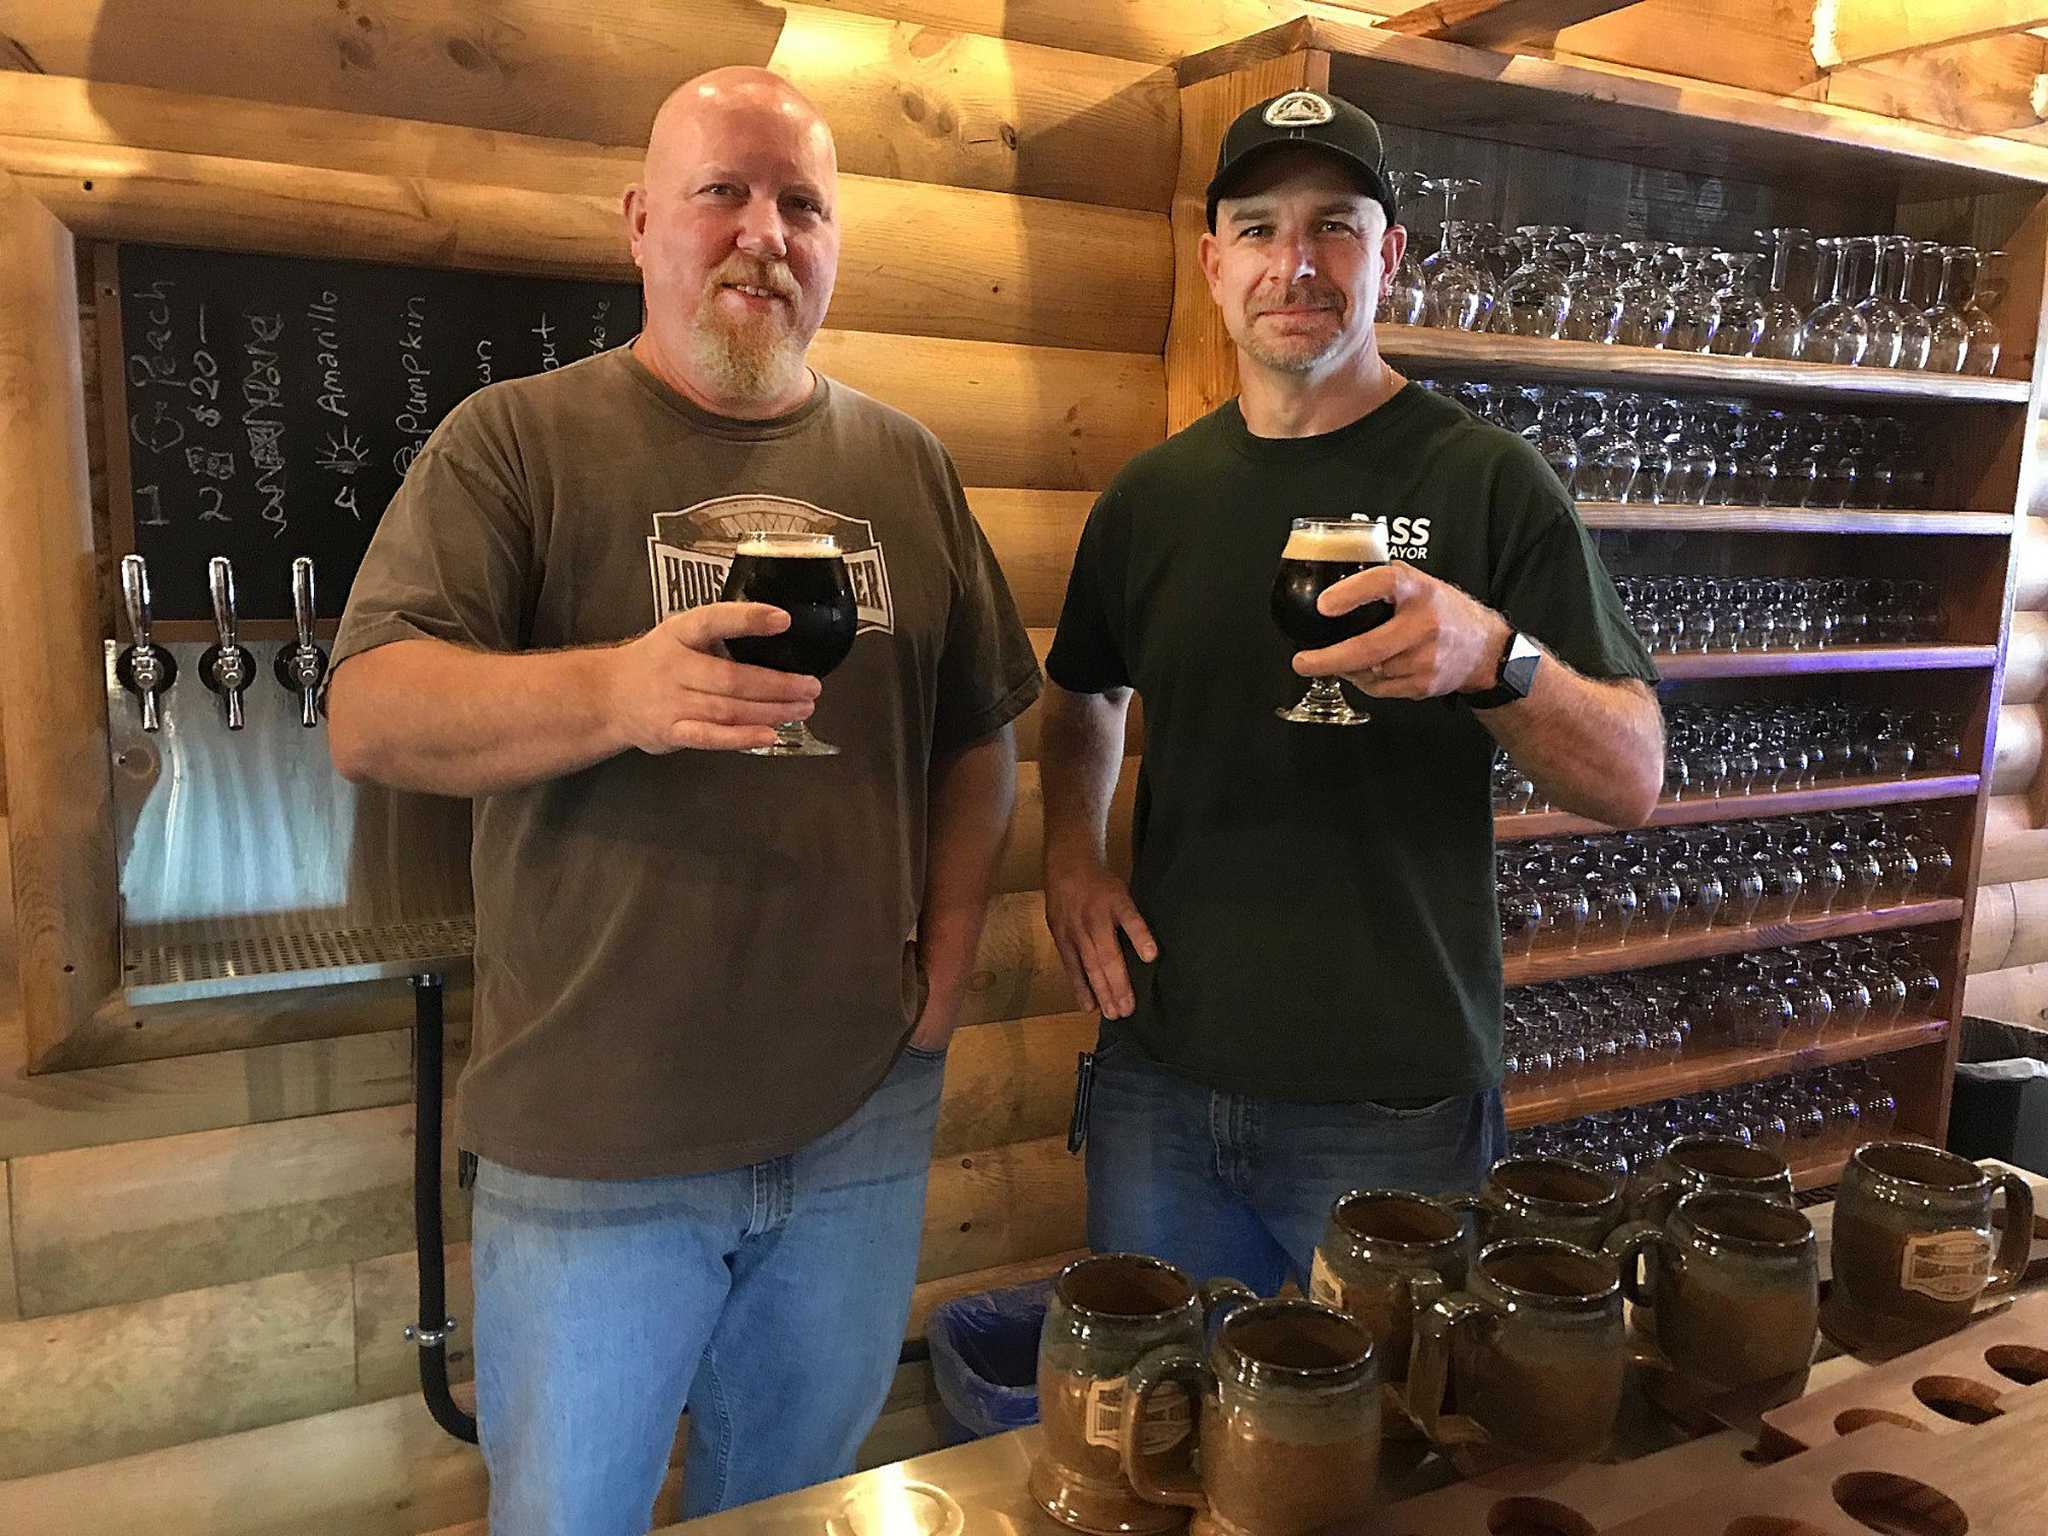 Housatonic River Brewery Offers Rustic Playful